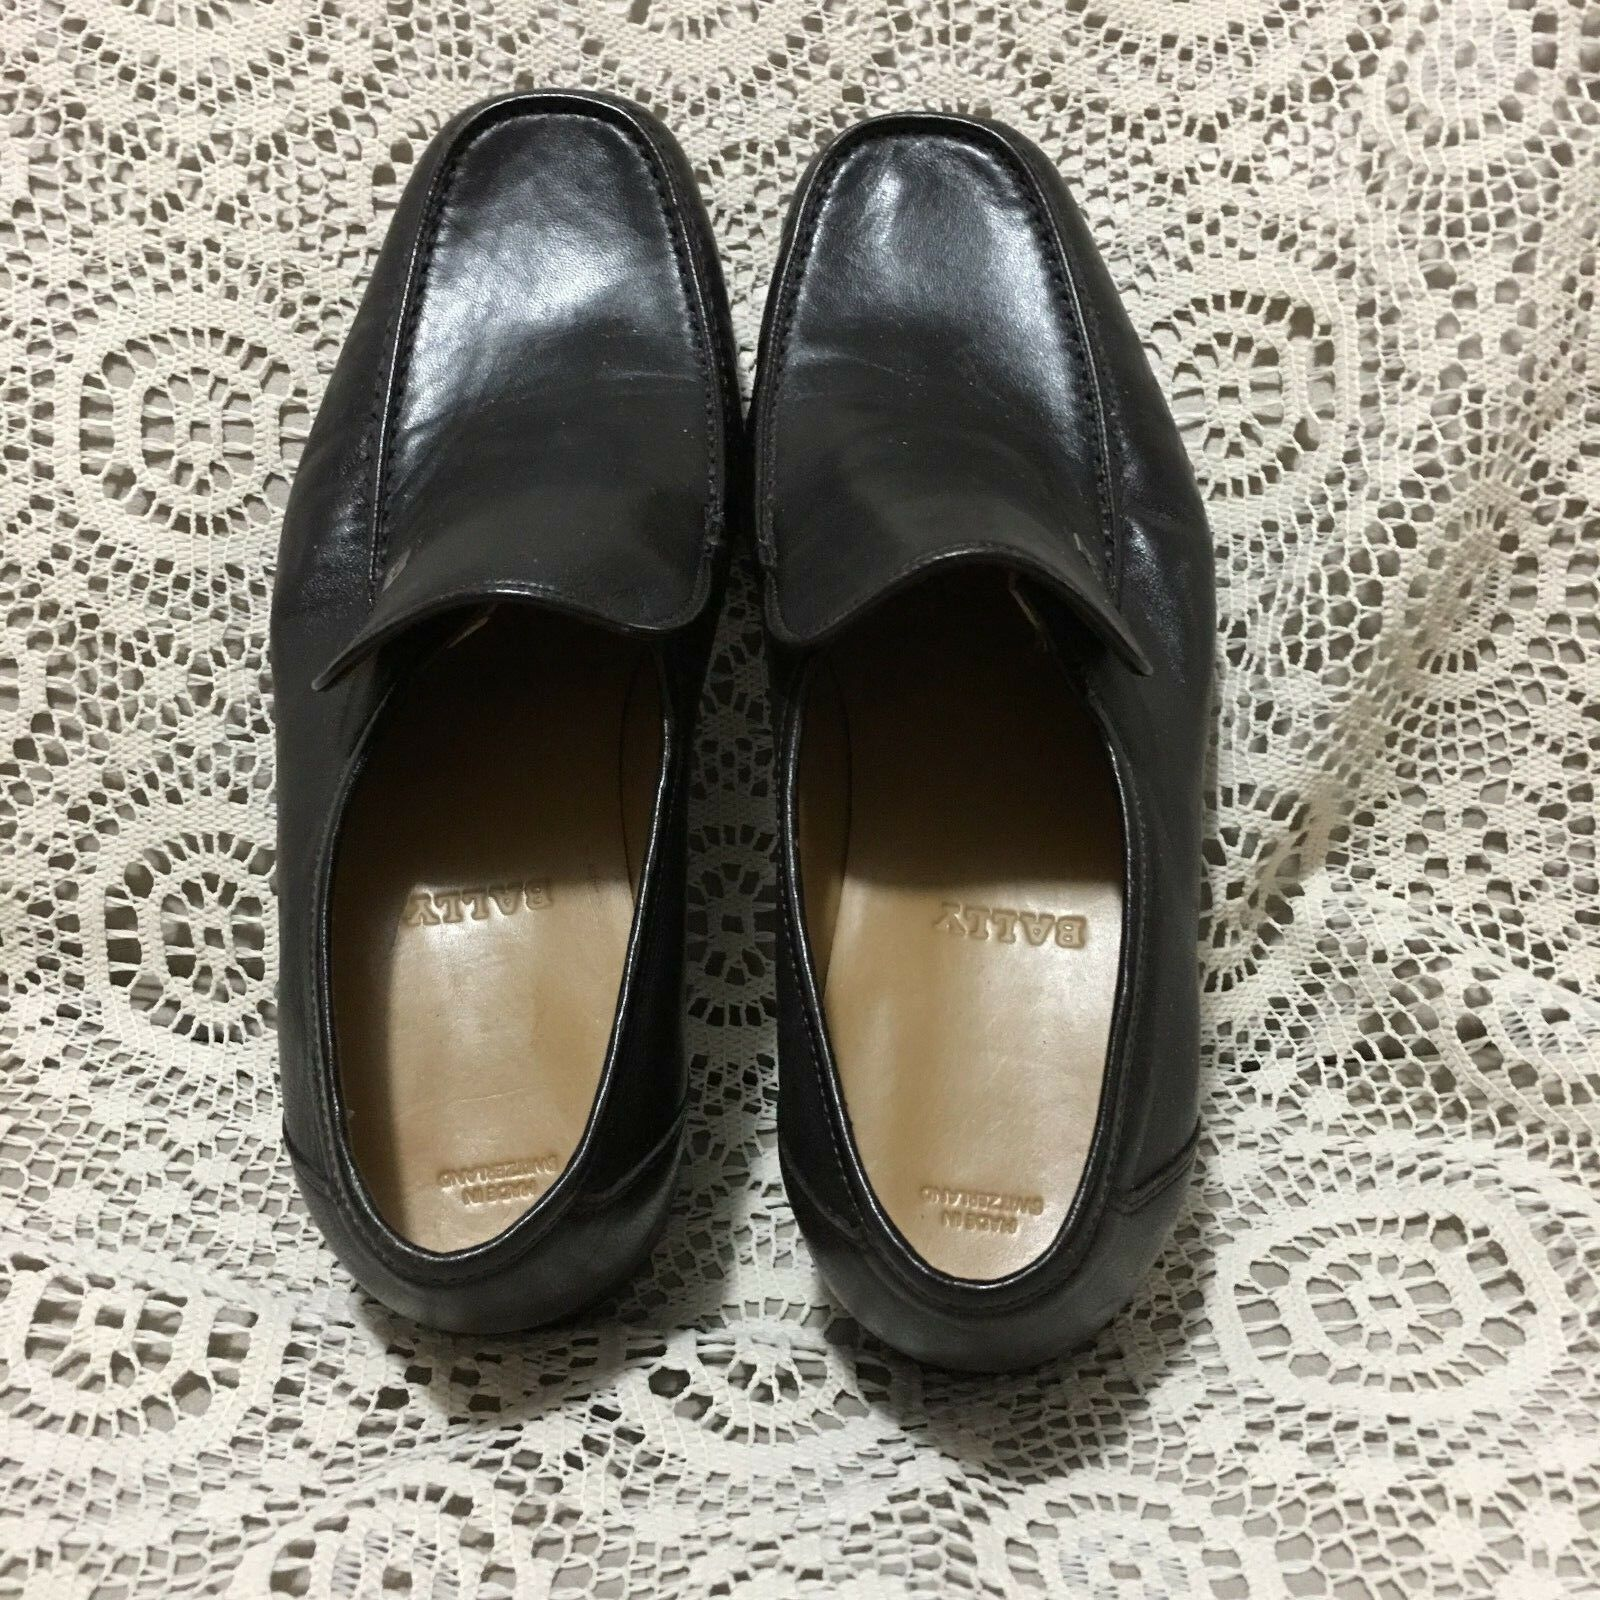 BALLY MADE IN SWITZERLAND MENS DARK BROWN LEATHER LOAFERS SIZE EU 4.5,US 5.5